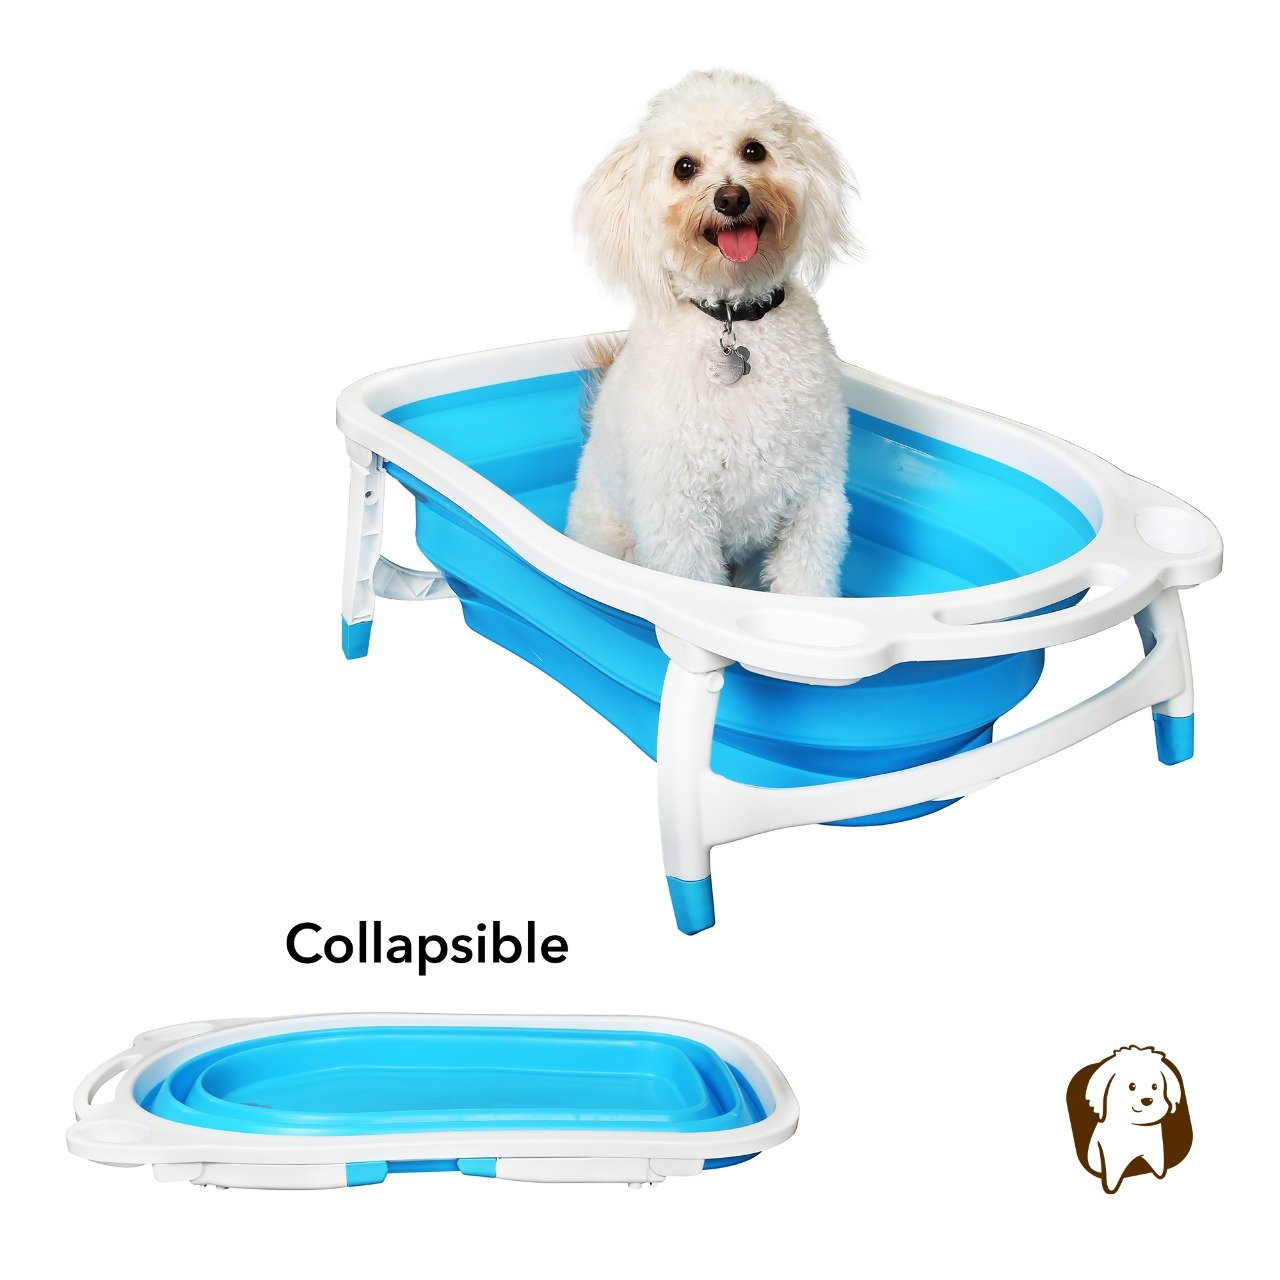 BaileyBear Collapsible Portable Expandable Accessory